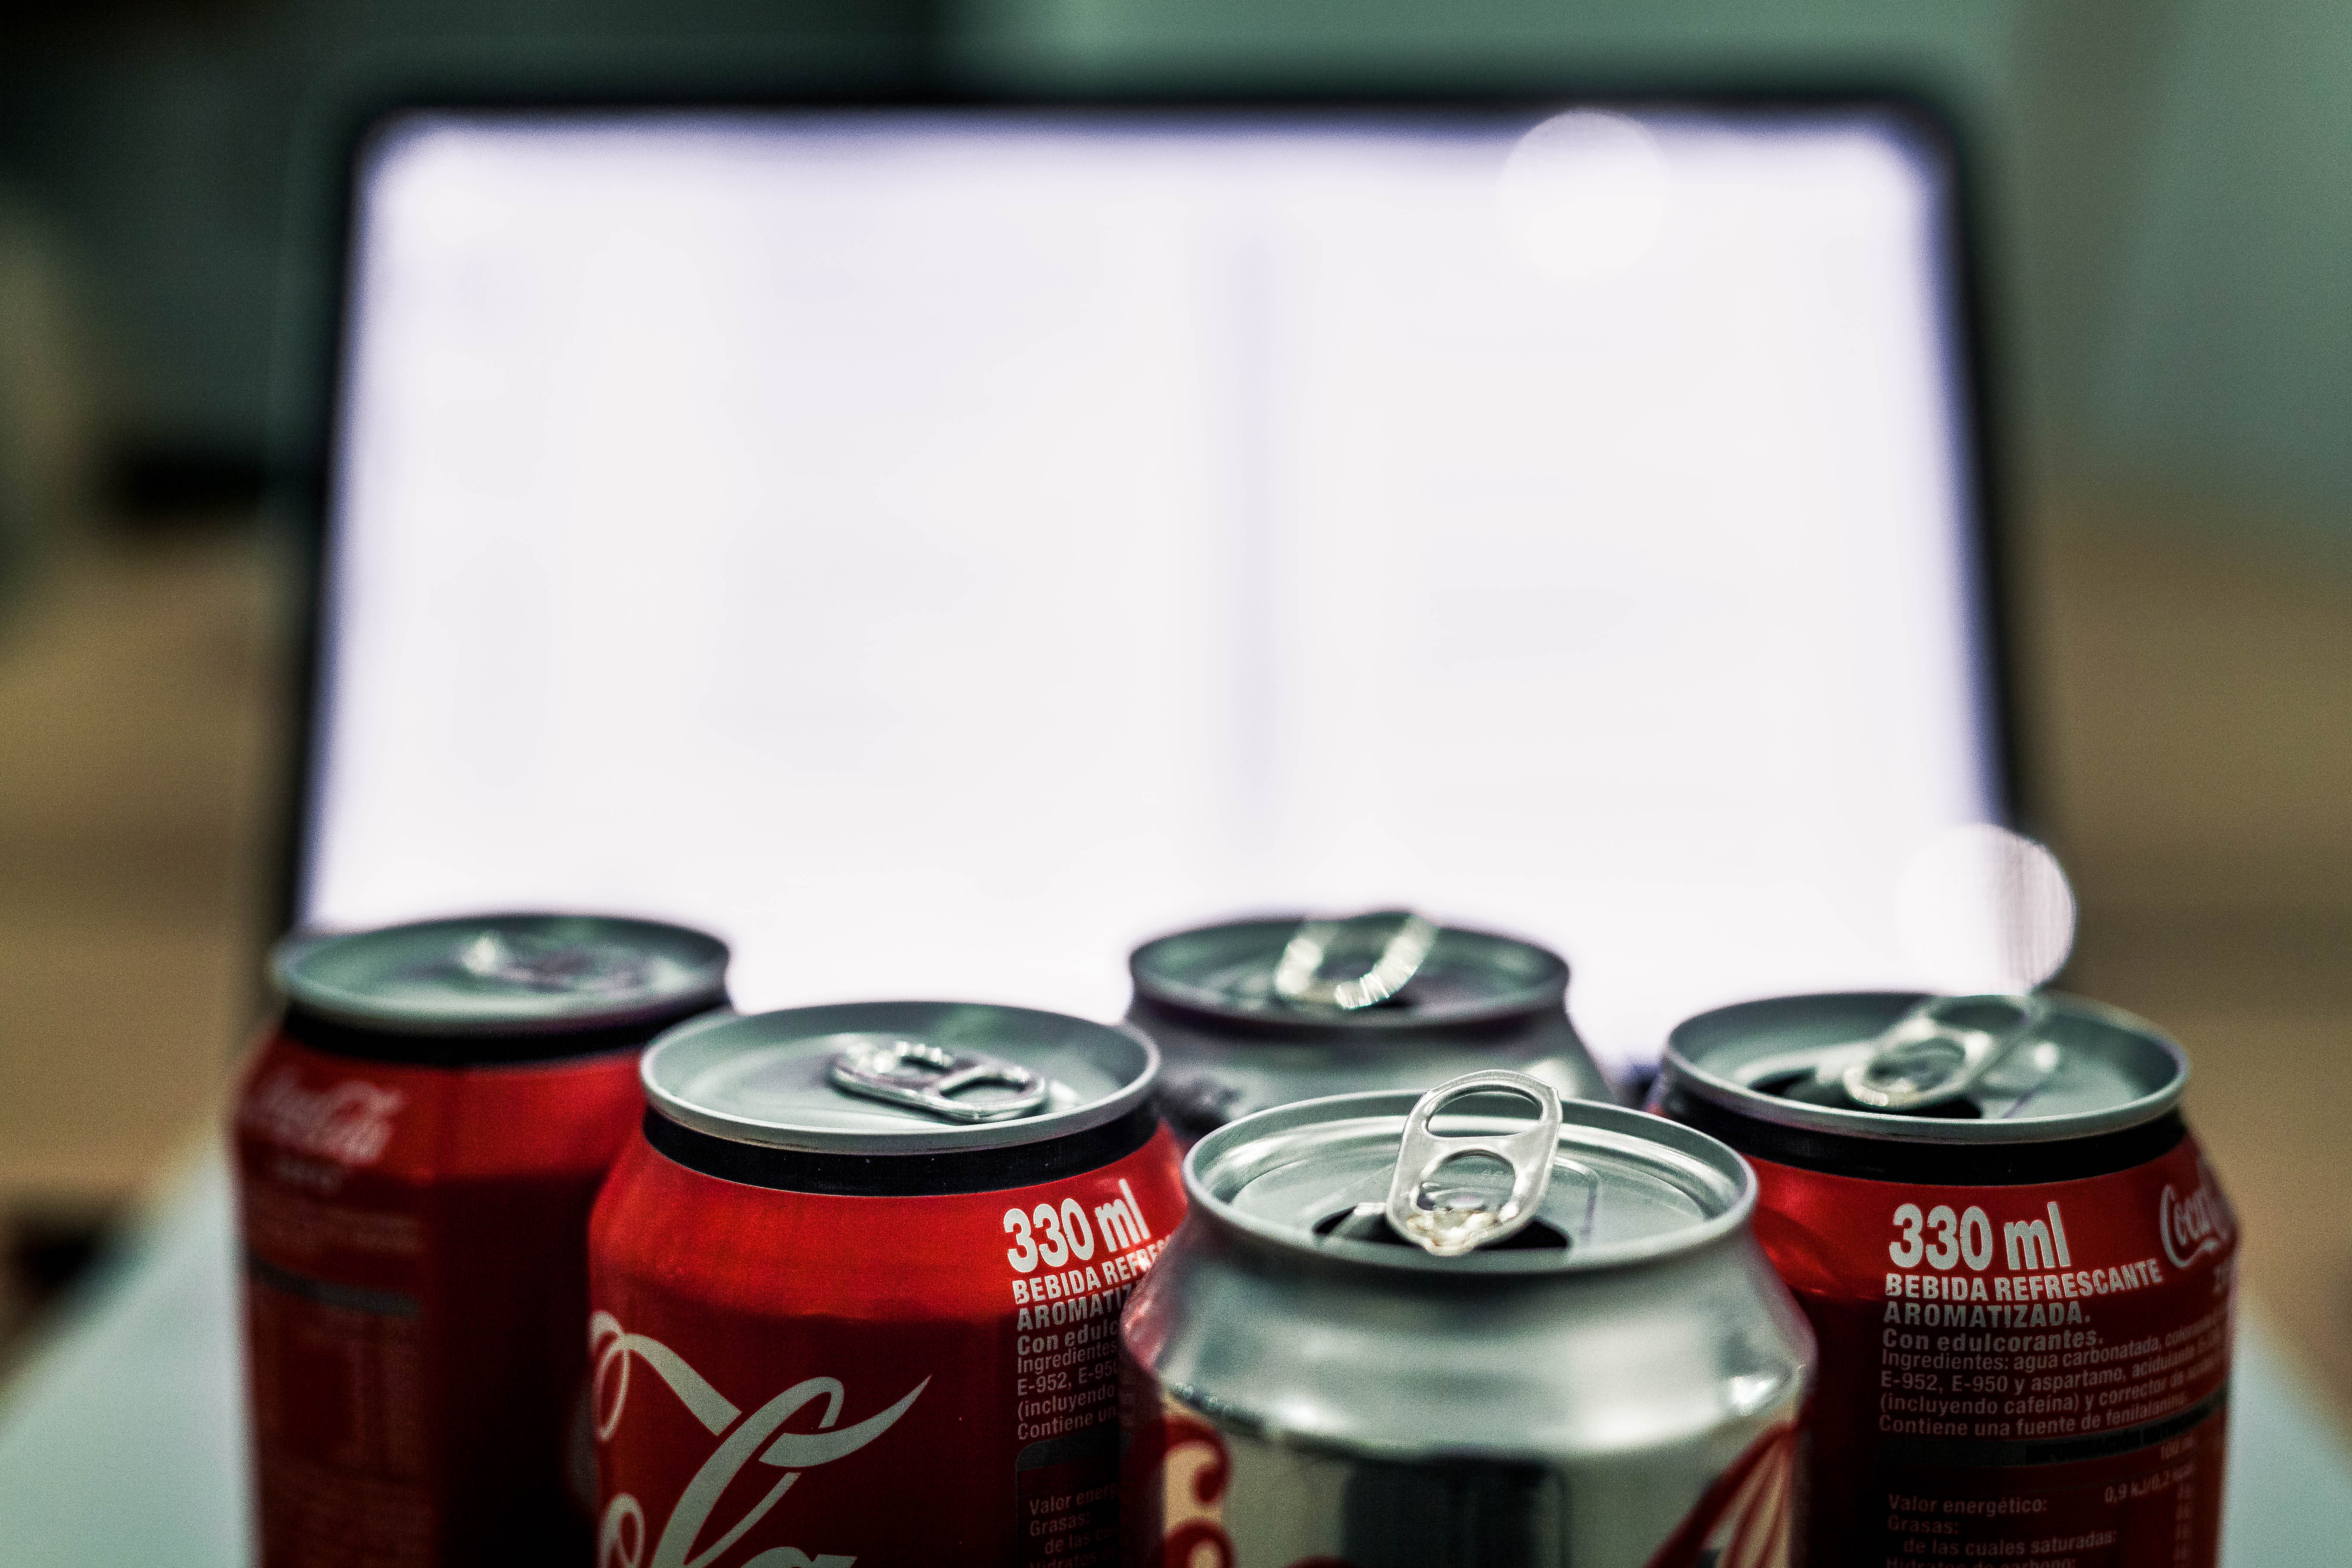 a soft drink tax according to Significantly, half of 16- to 24-year-olds, the biggest consumers of soft drinks, would cut back on the amount of standard carbonated soft drinks they drink if the price were to rise under the sugar tax.